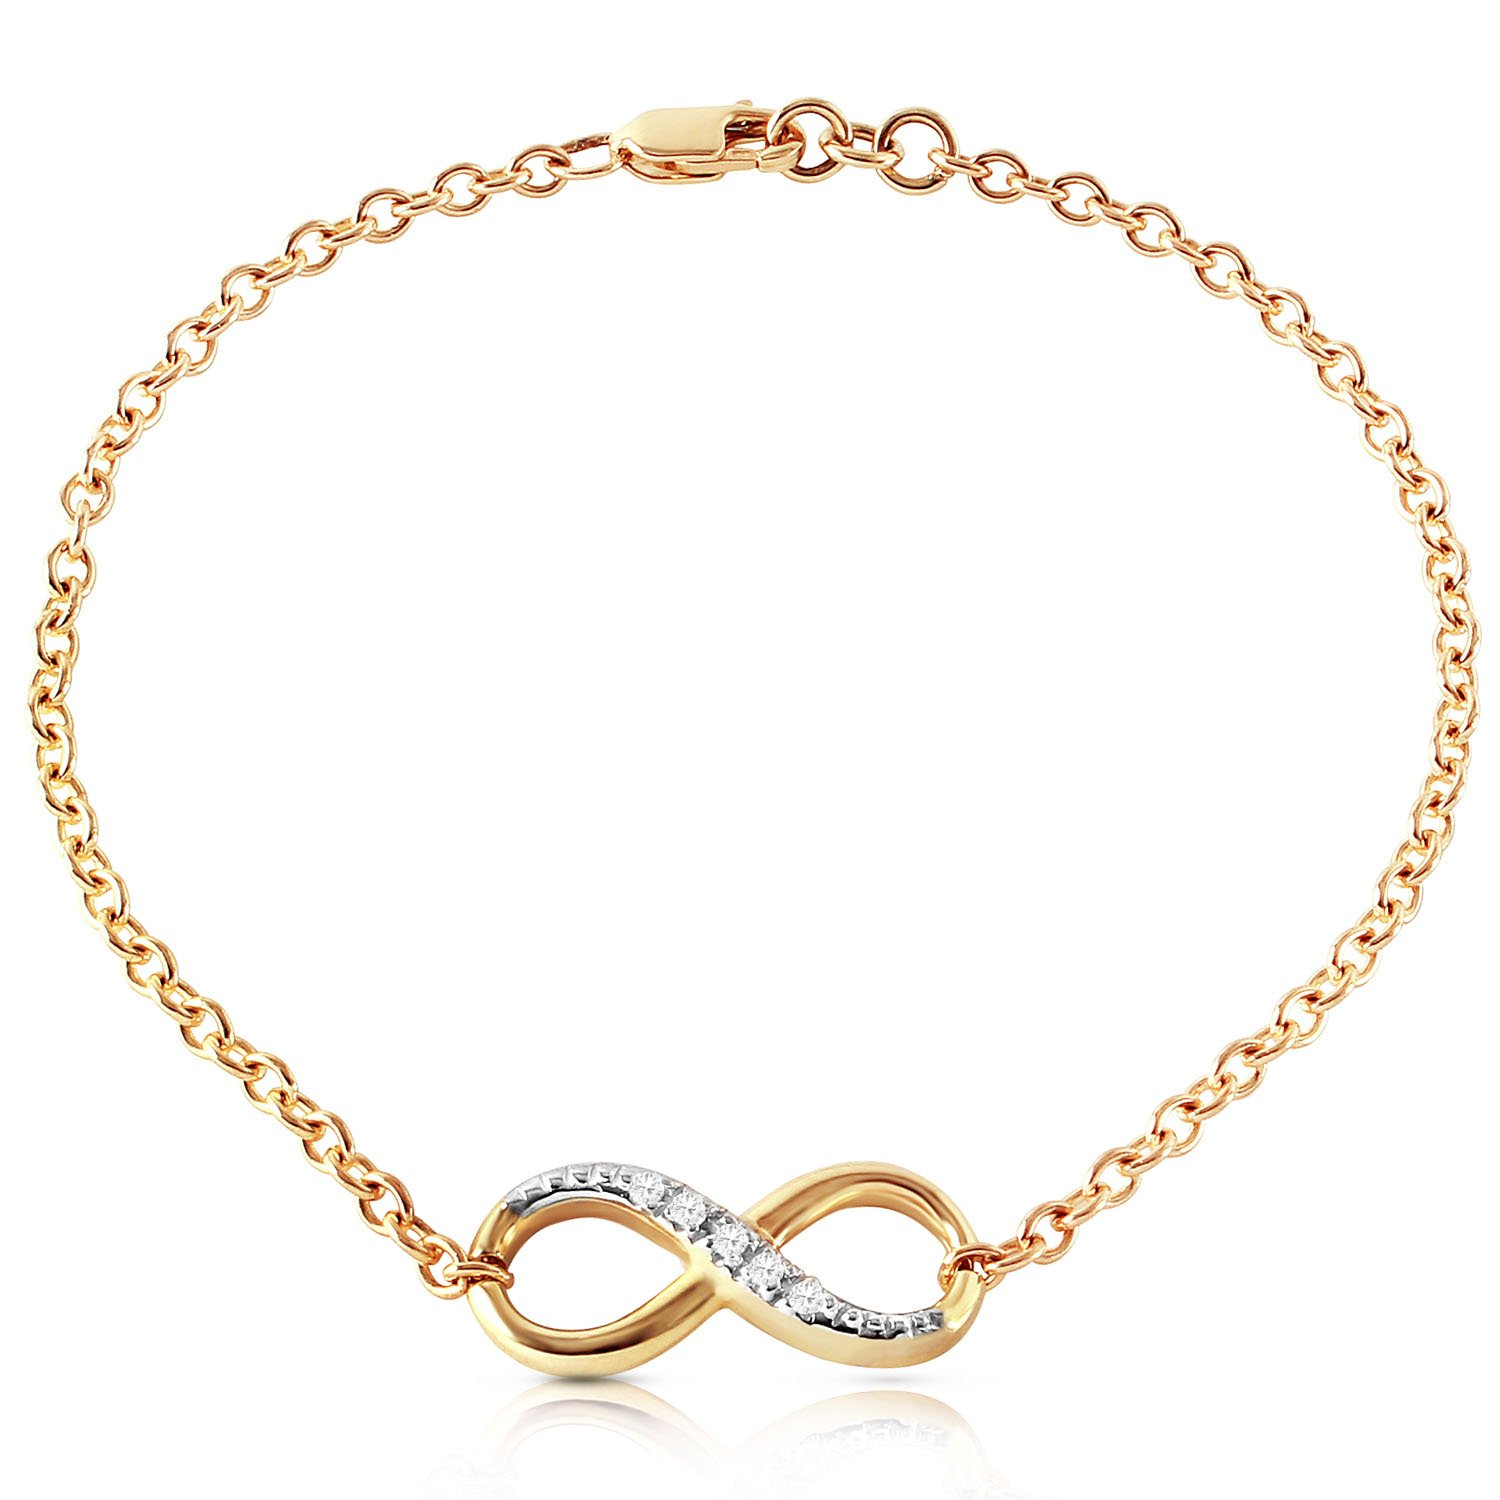 Galaxy Gold 14K Solid Gold Infiniti Bracelet with Natural Diamonds